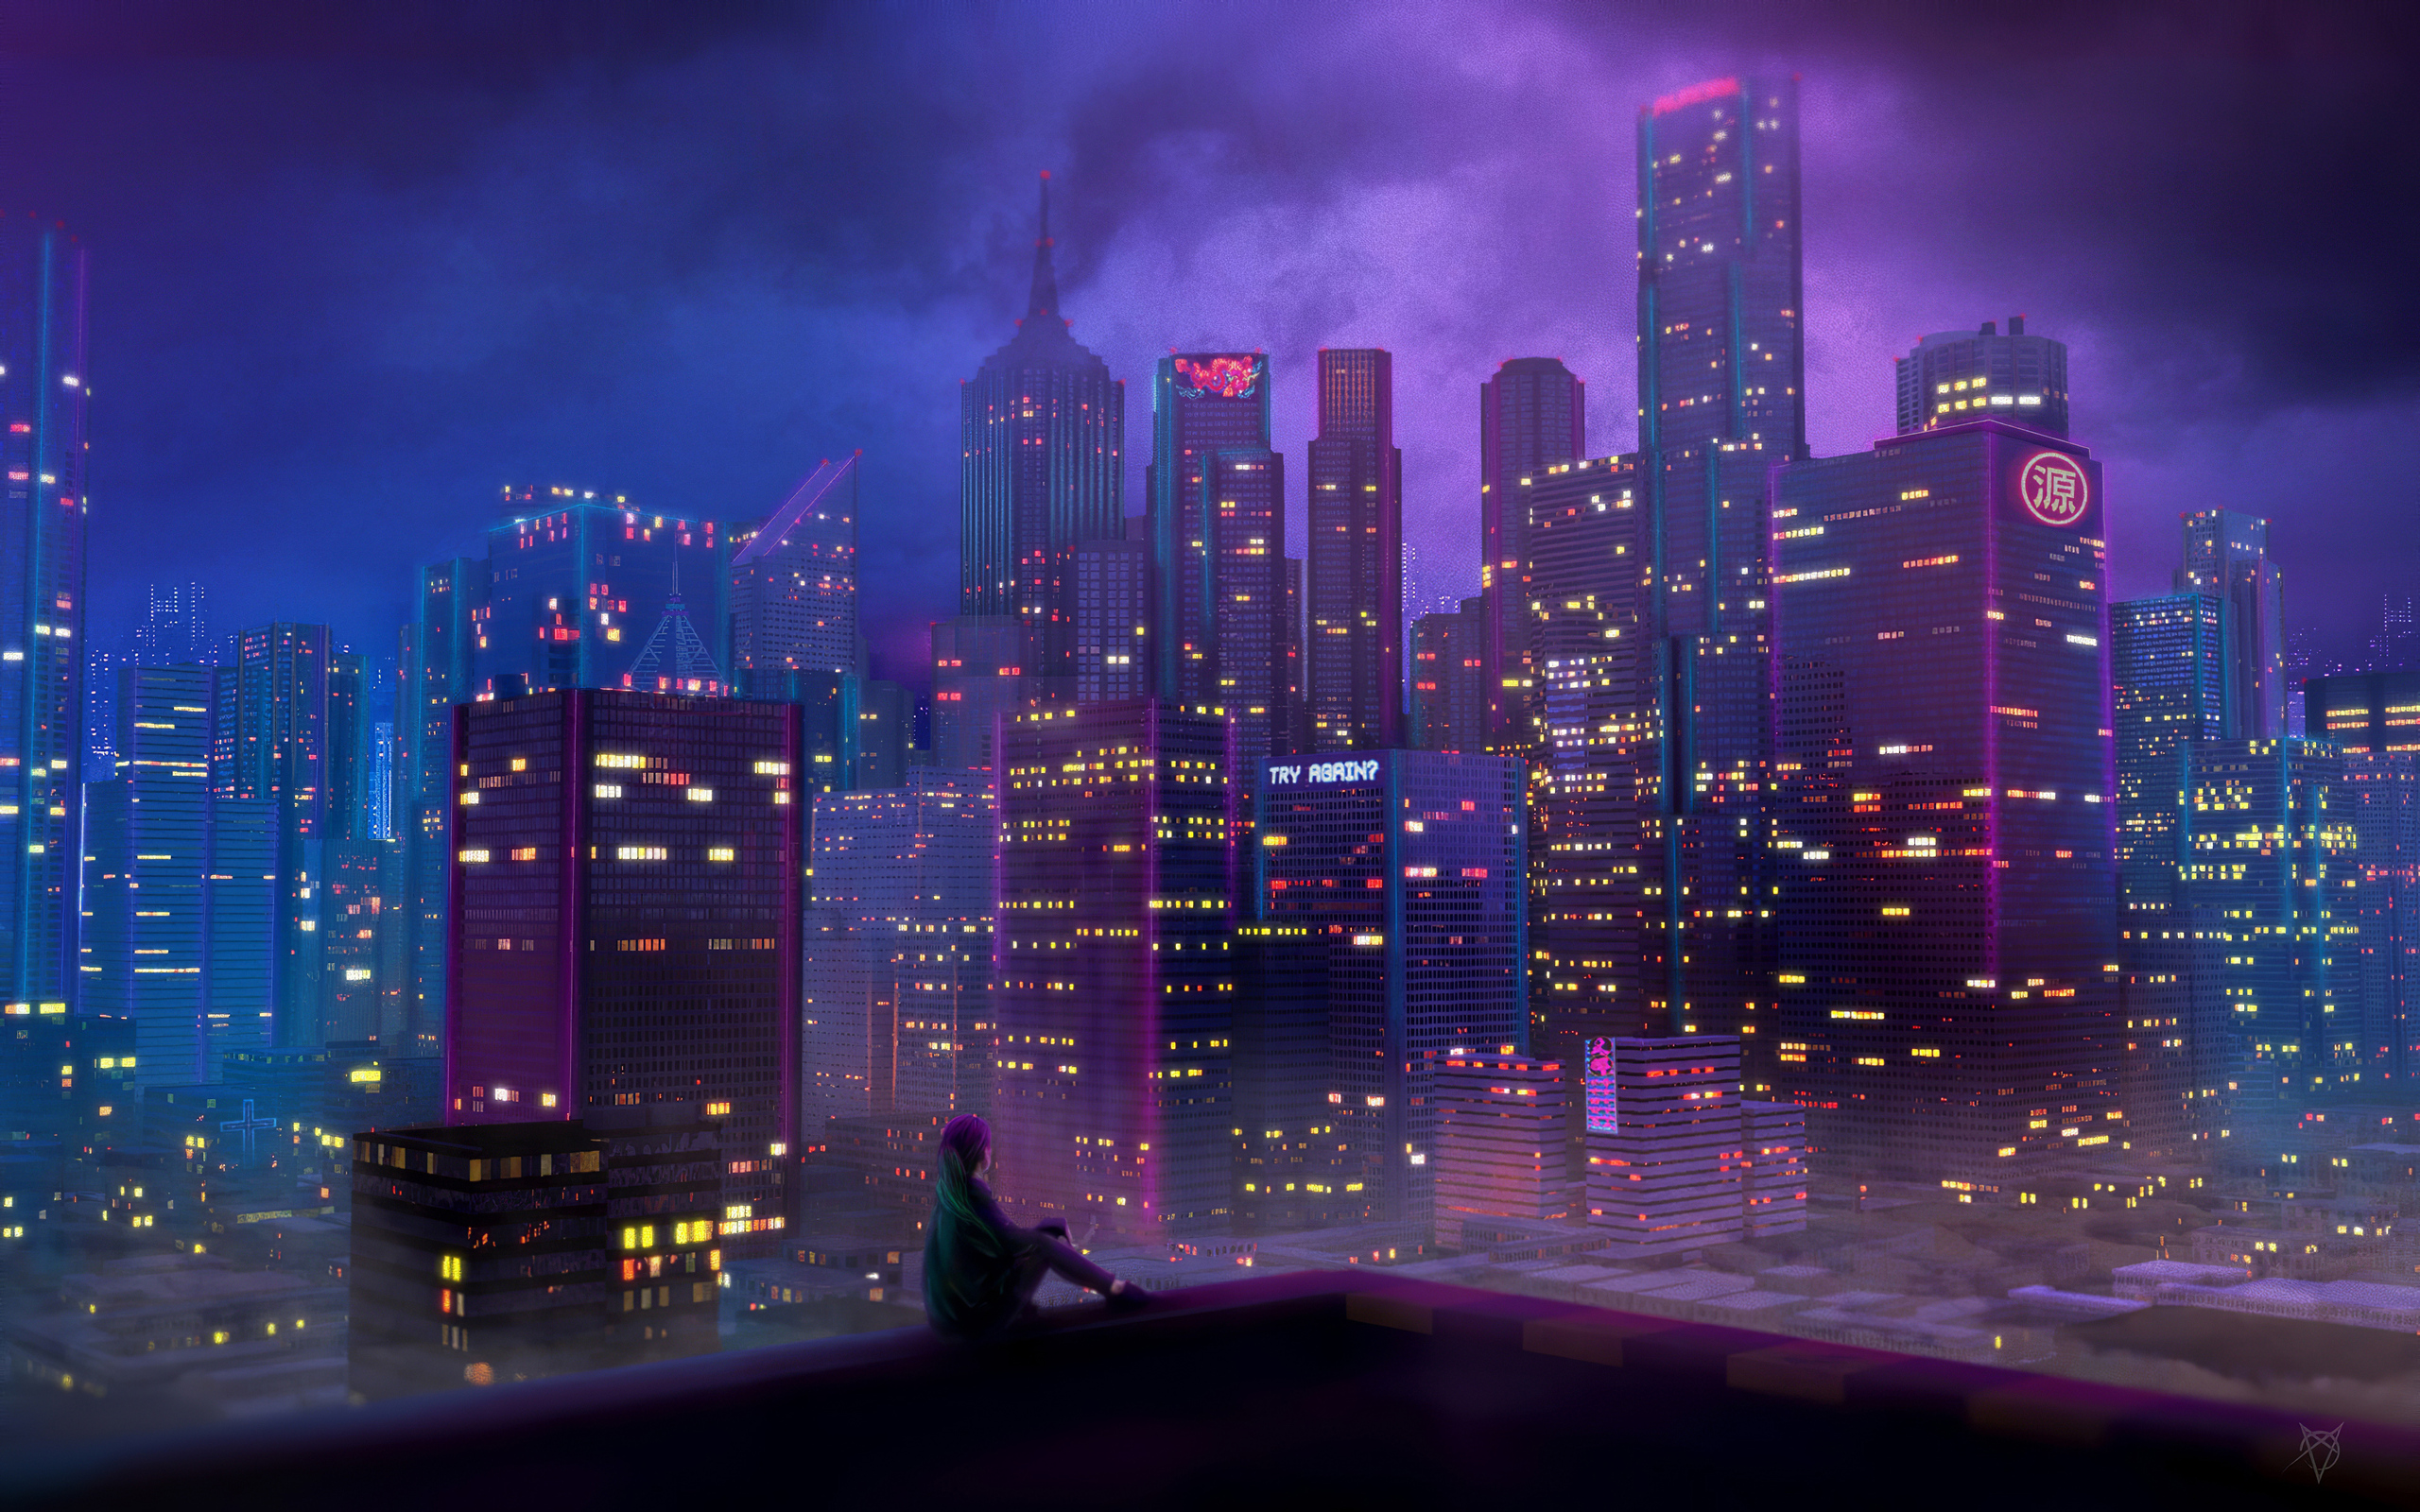 anime-city-girl-4k-xl.jpg